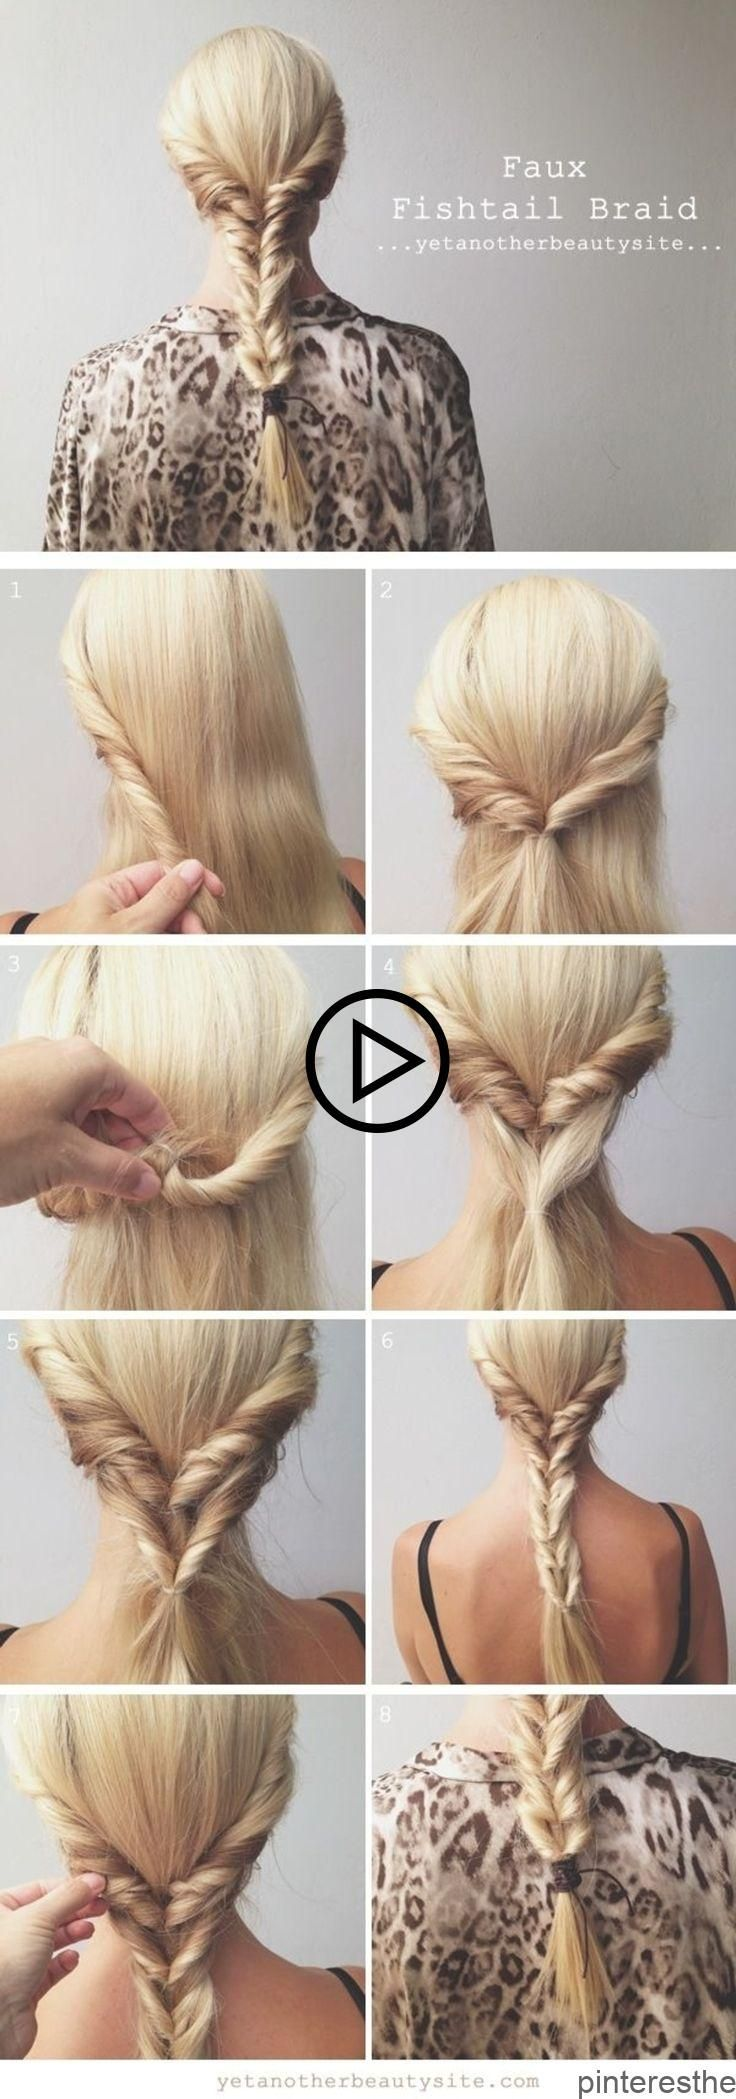 12. #Fake # #Fishtail # – # 17 #Gorgeous #Hairstyles #for #Lazy # #Girls # … # → #Hair